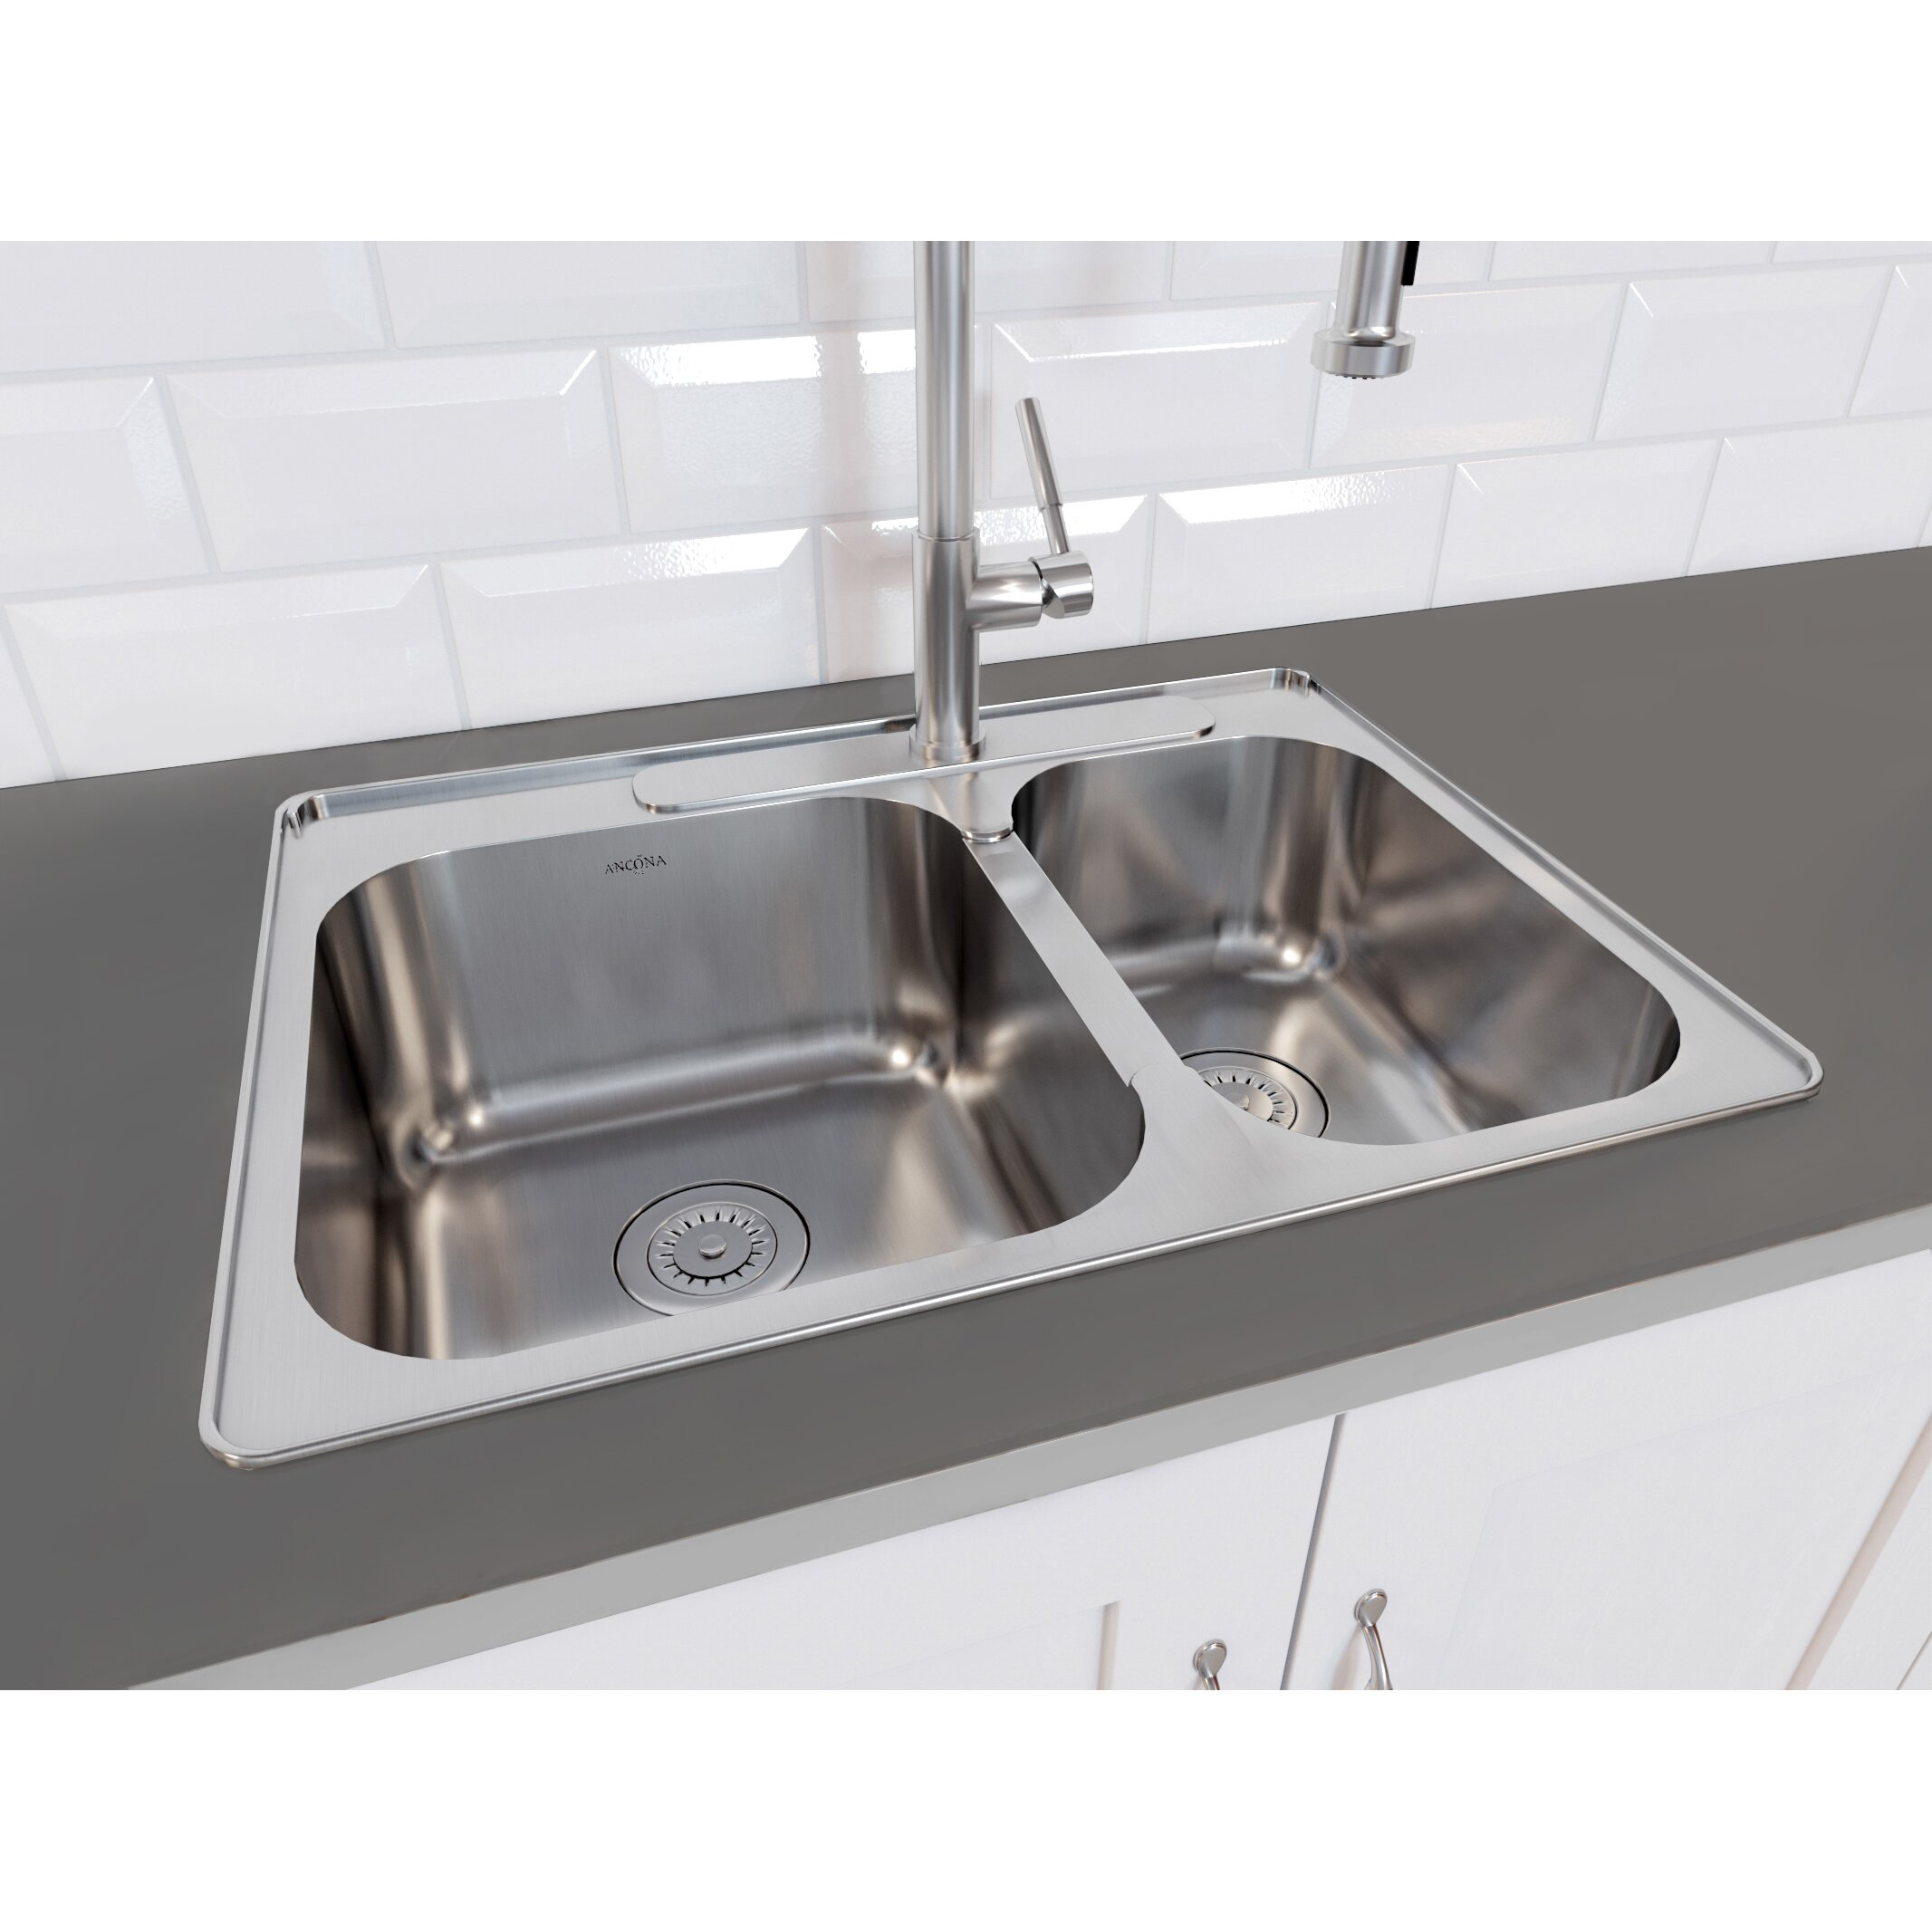 """ancona capri drop-in 27.1"""" x 20.4"""" double bowl kitchen sink with"""